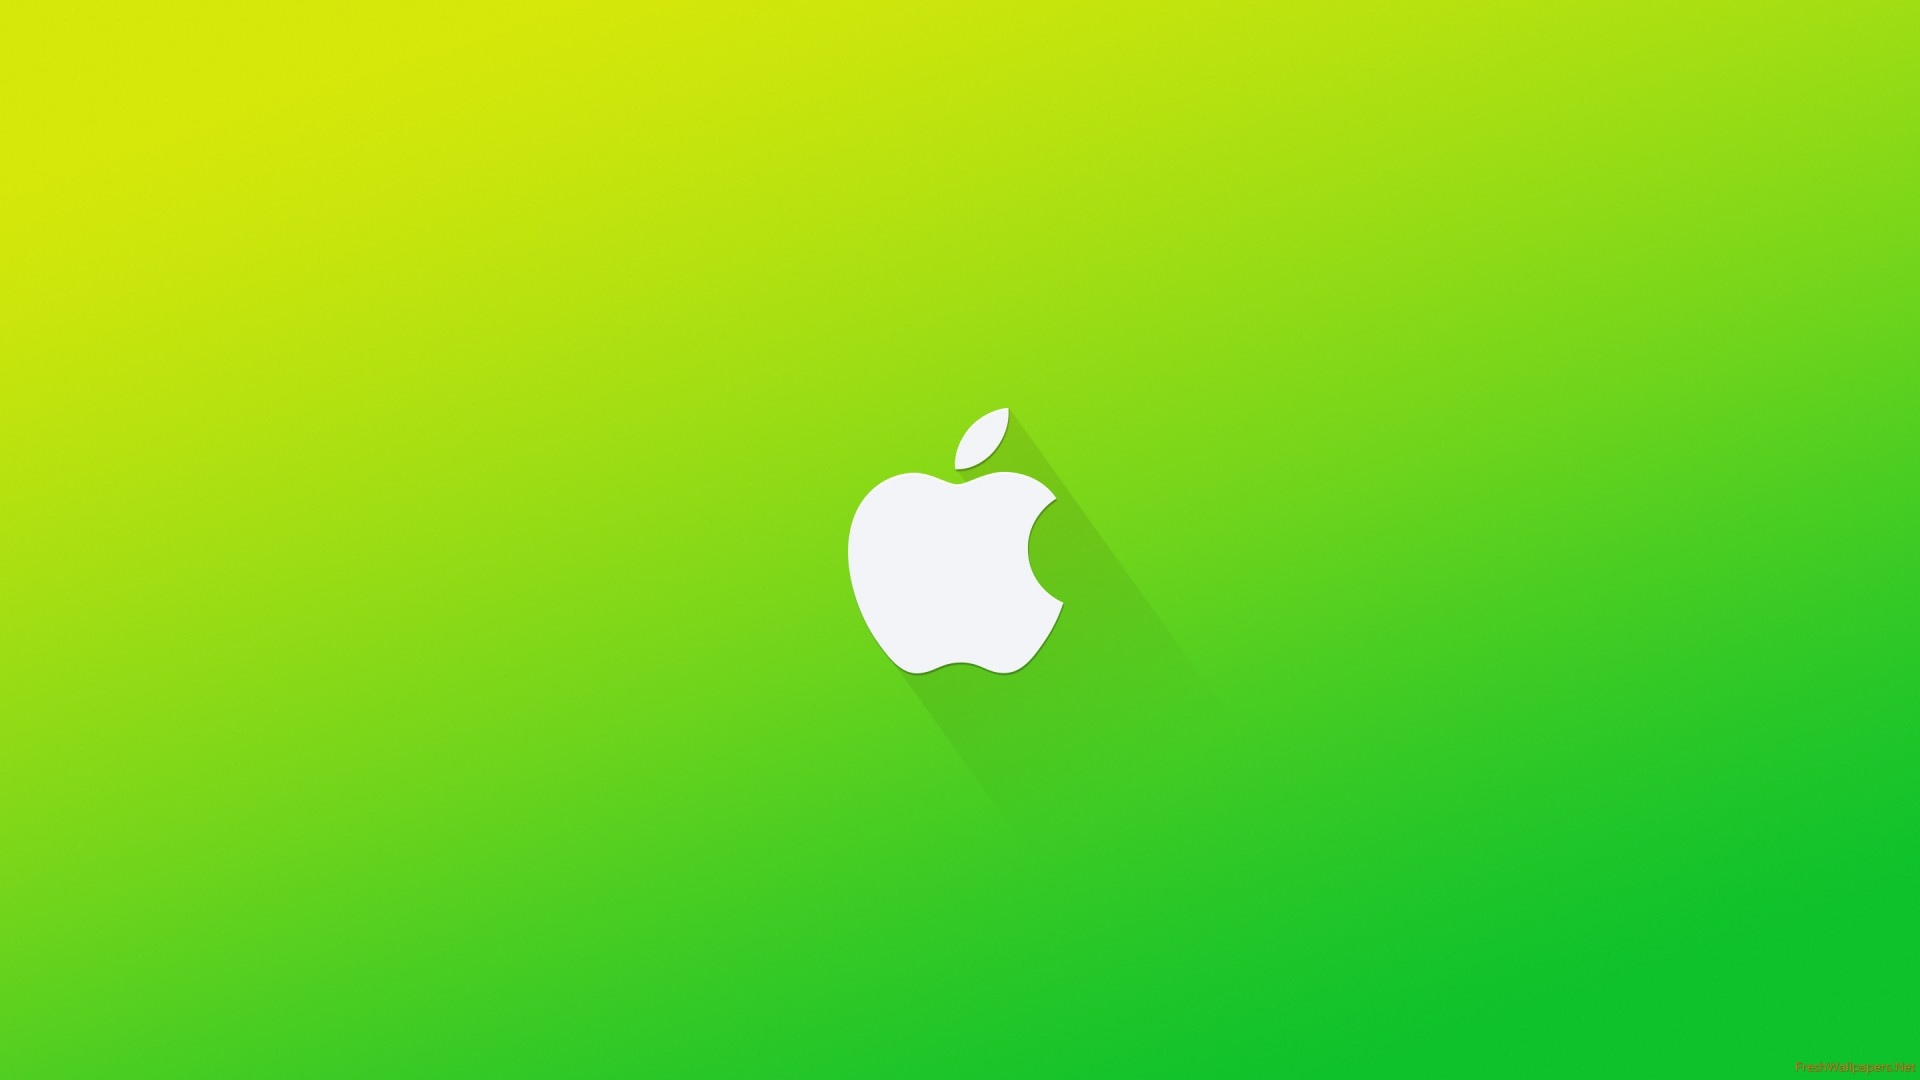 Apple Logo HD Wallpapers Group  1920x1080